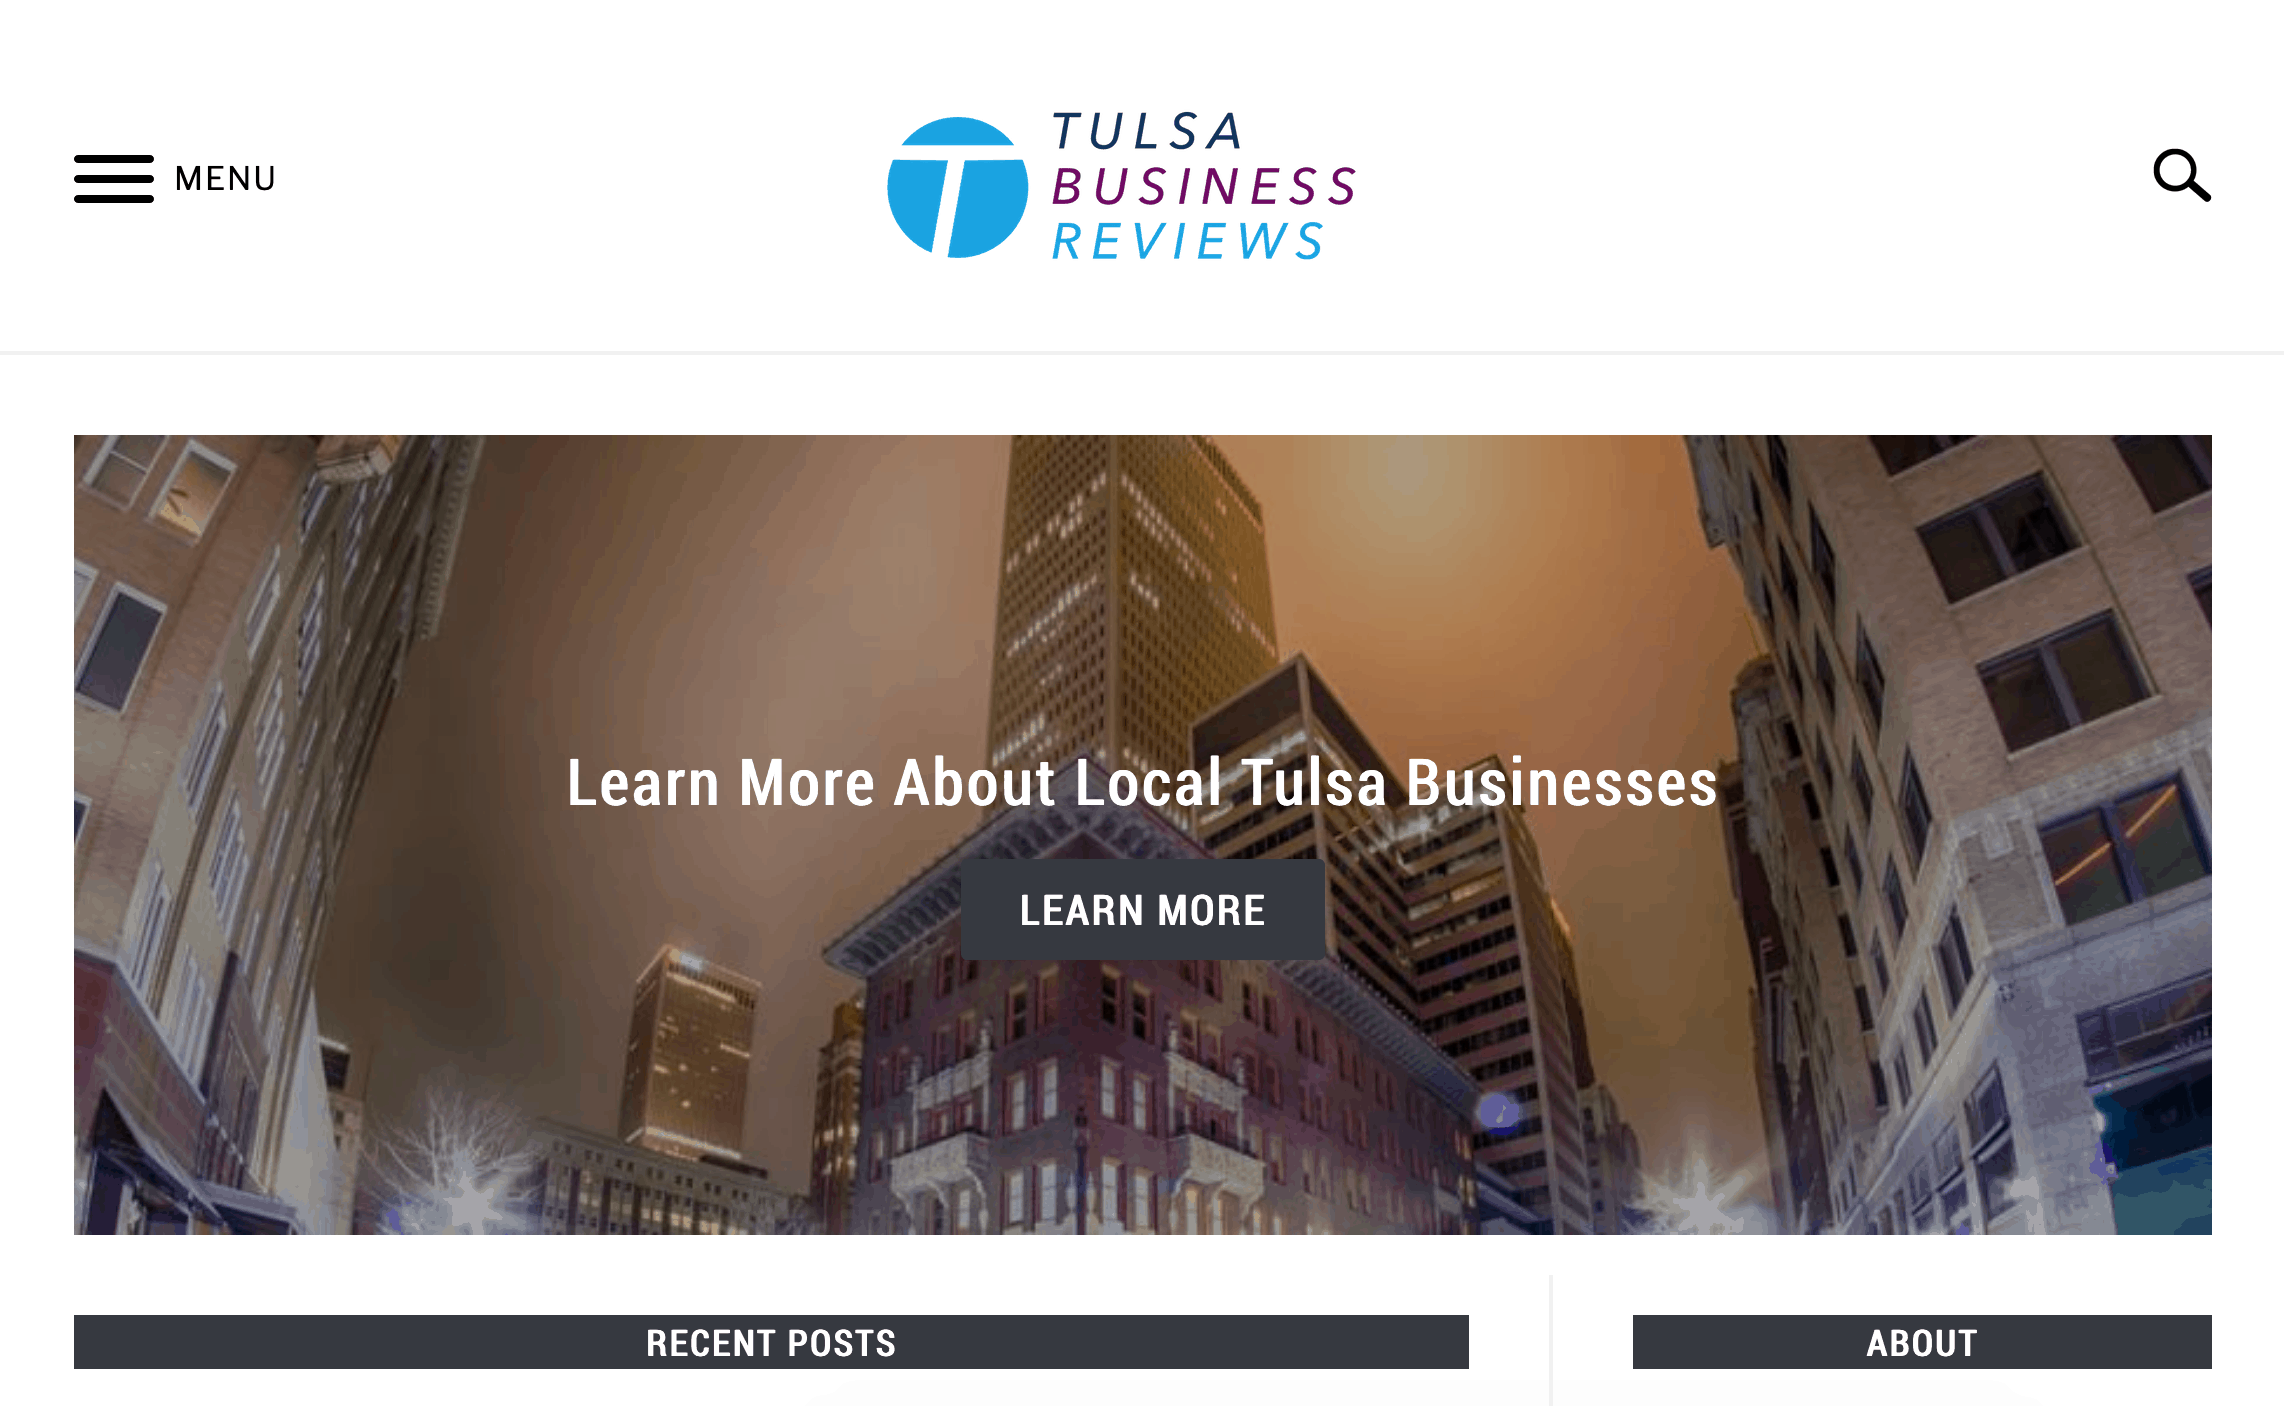 Tulsa Business Reviews Home Page